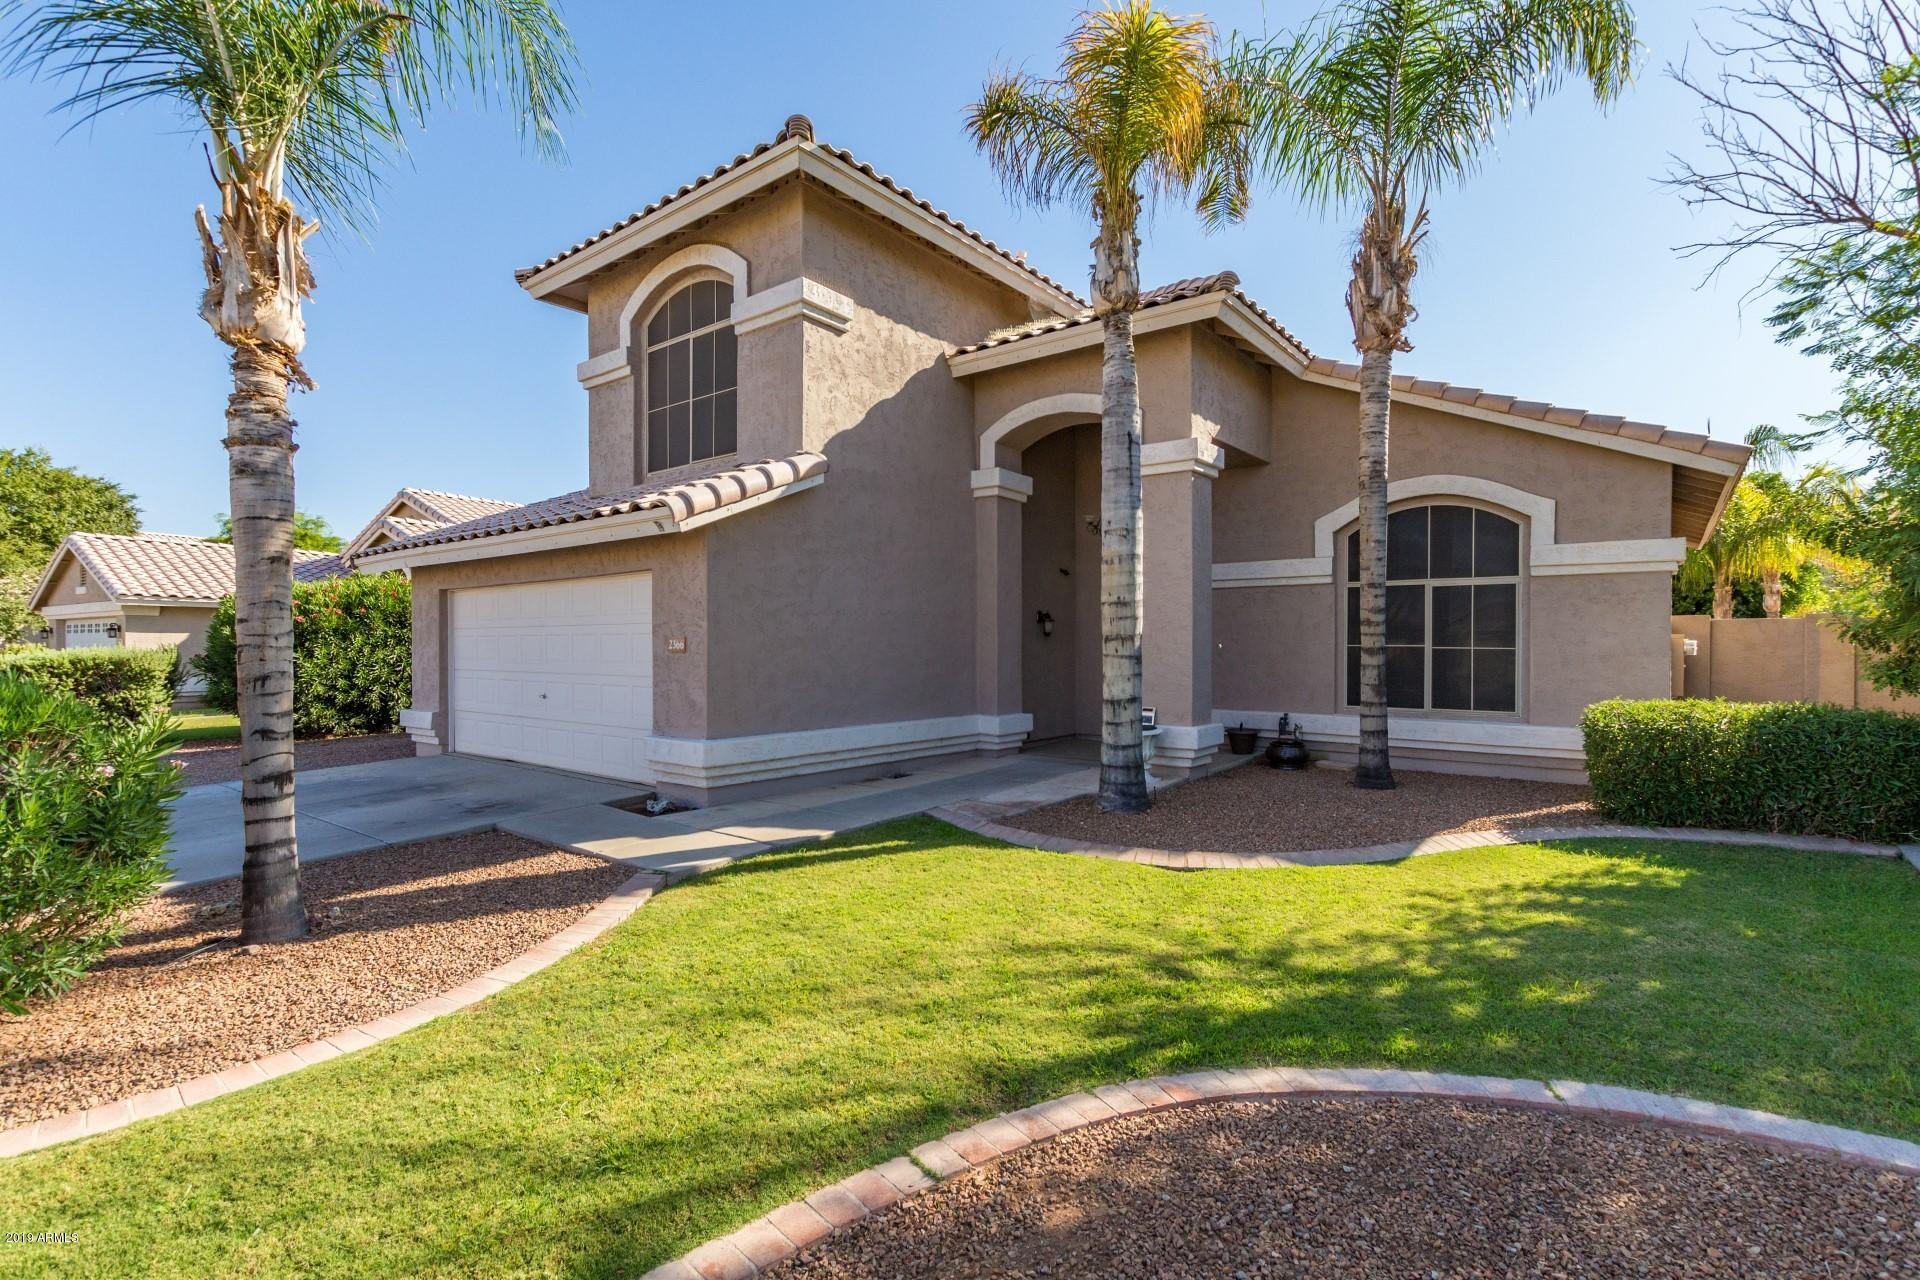 Photo of 2366 S LONGMORE Street, Chandler, AZ 85286